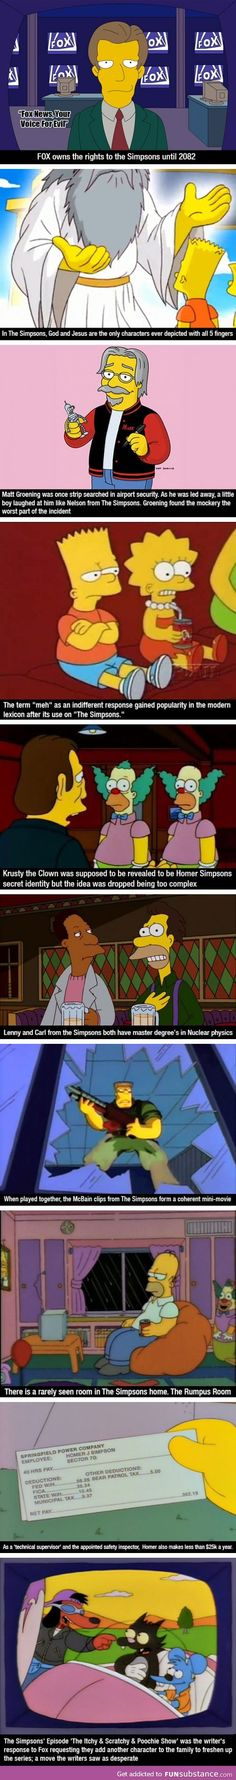 Interesting facts about The Simpsons